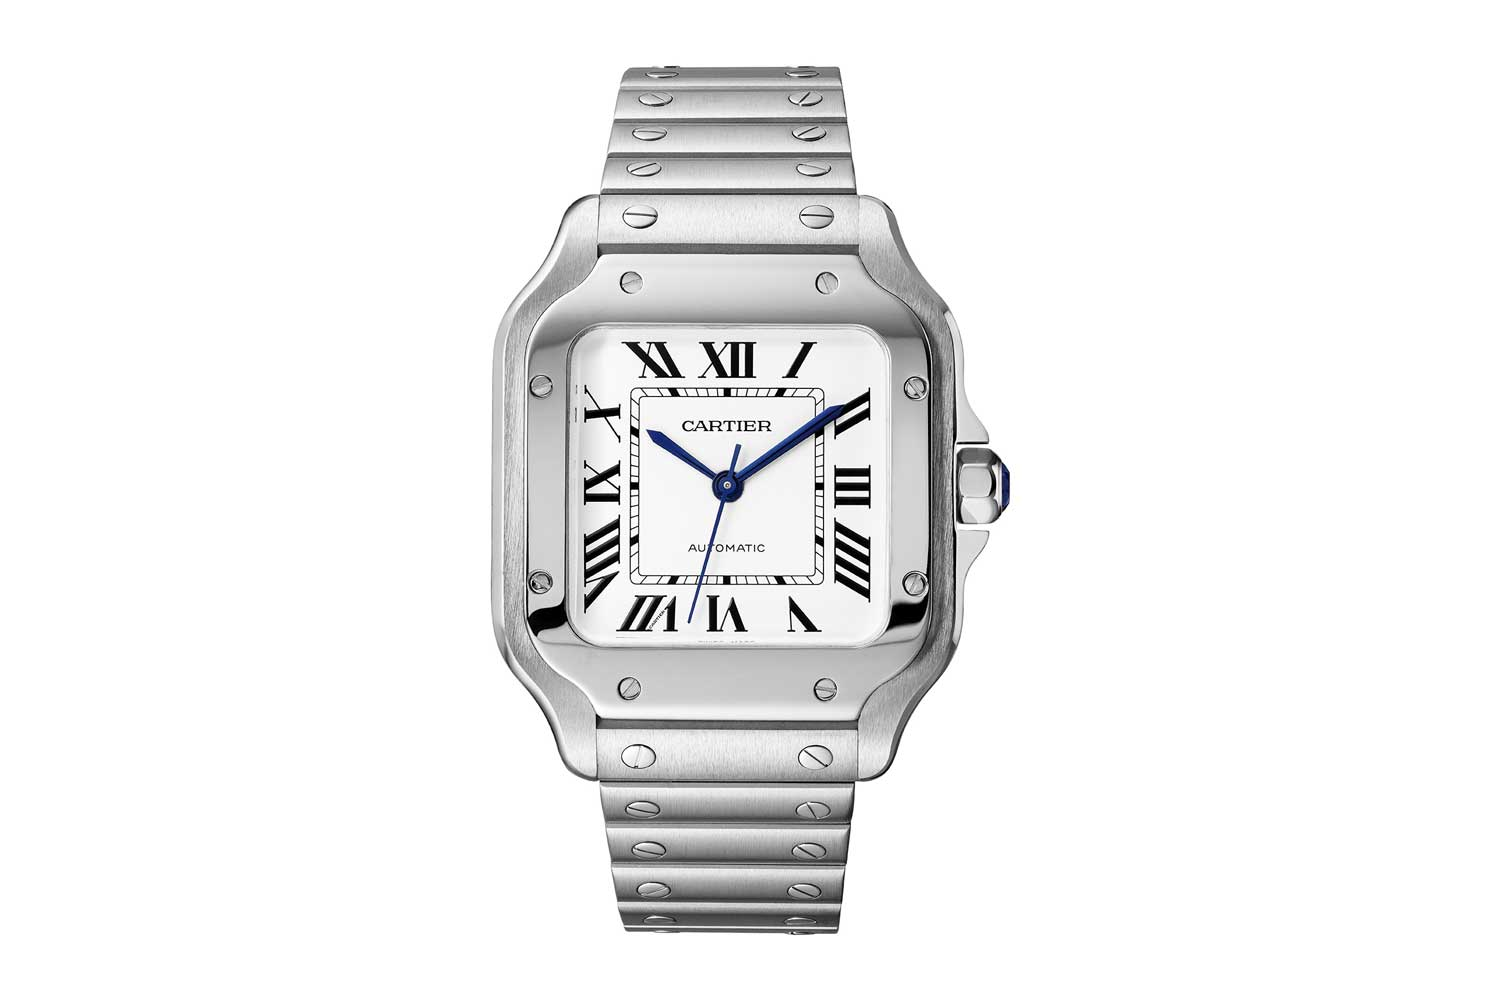 A present day, all steel, Santos de Cartier, featuring screws on both its bezel and its bracelet, measuring width: 39.8 mm, thickness: 9.08 mm; this instance was launched in 2018